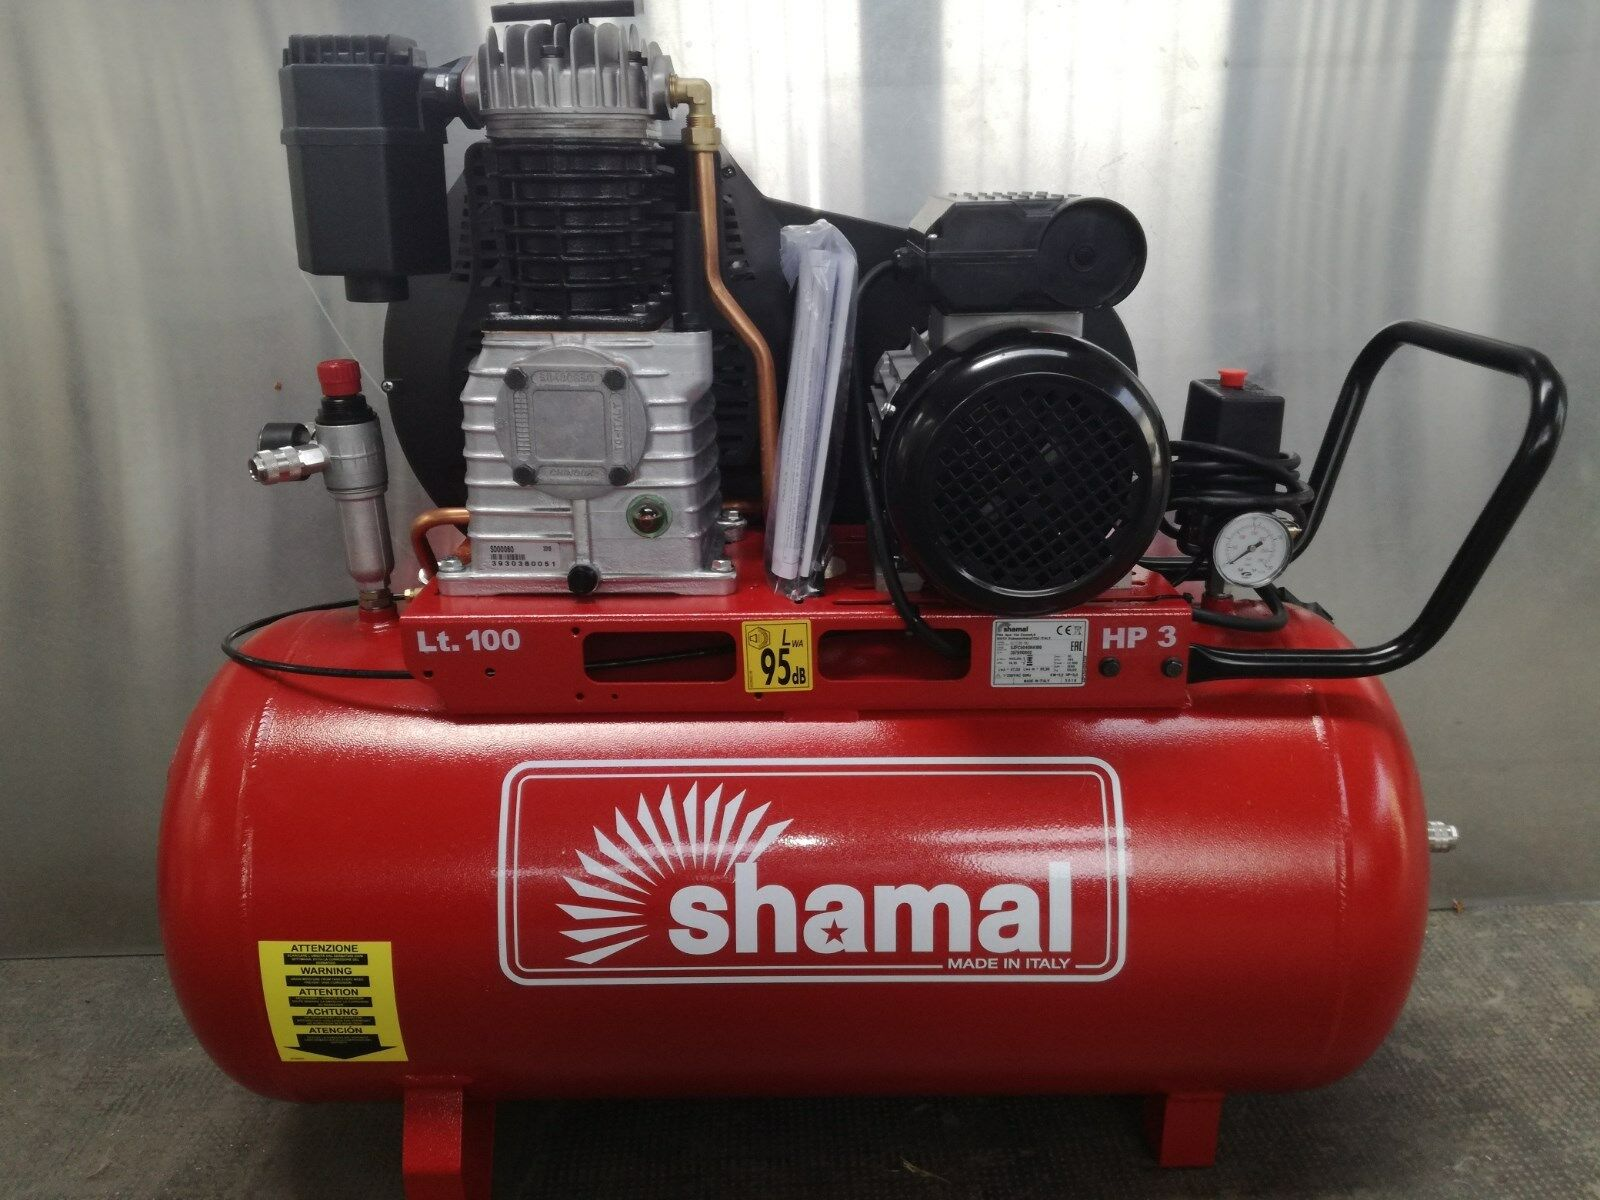 PROFESSIONAL COMPRESSOR 3 HP 100 LITERS